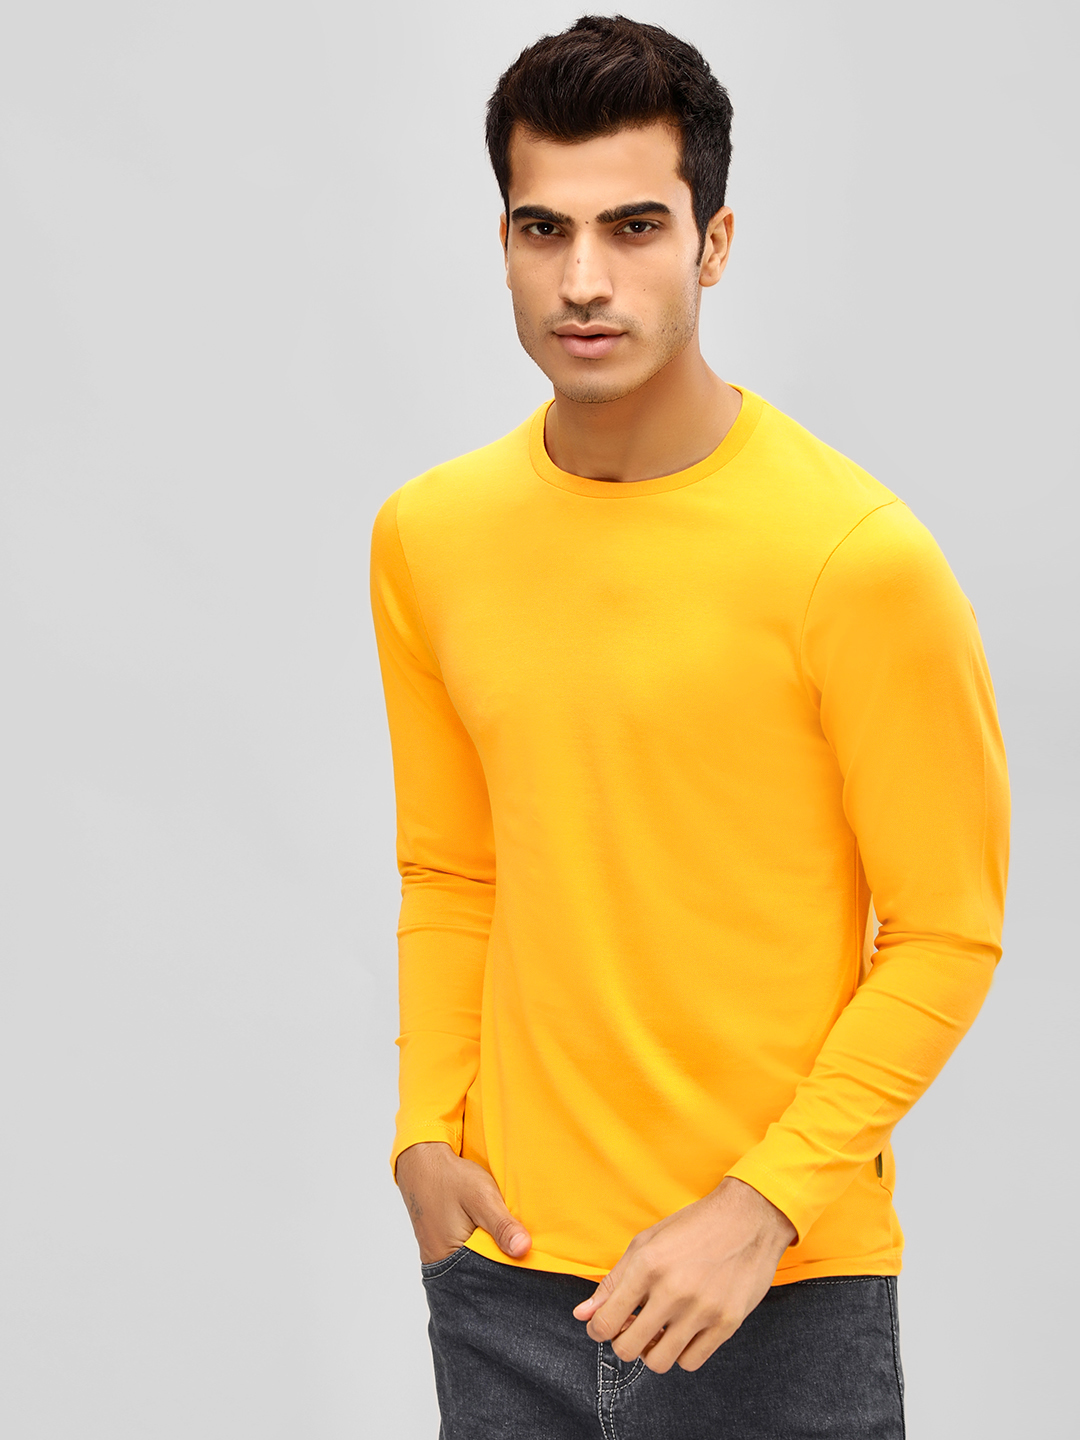 KOOVS Yellow Muscle Fit Long Sleeve T-Shirt 1